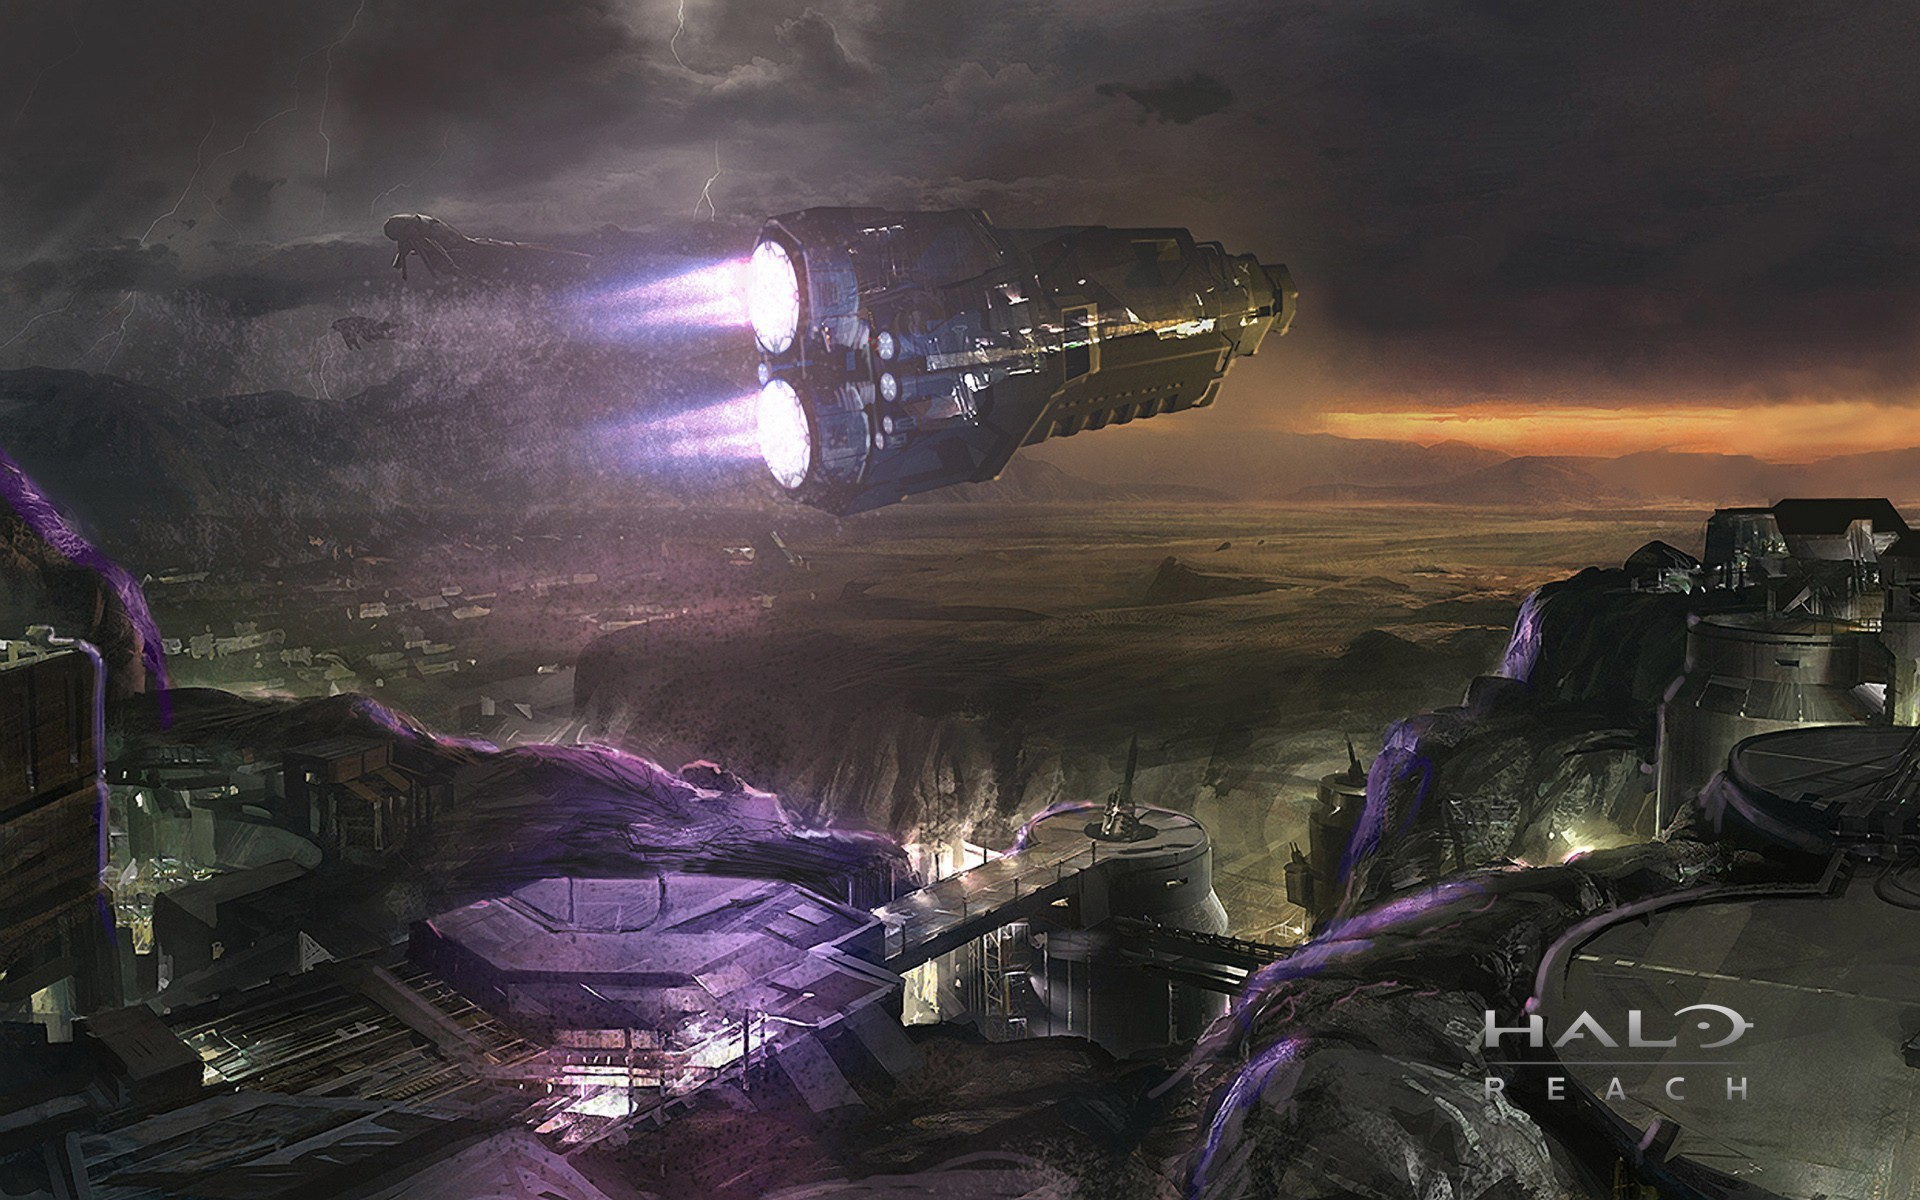 1920x1200 Halo: Reach HD Wallpaper | Background Image |  | ID:374601 -  Wallpaper Abyss